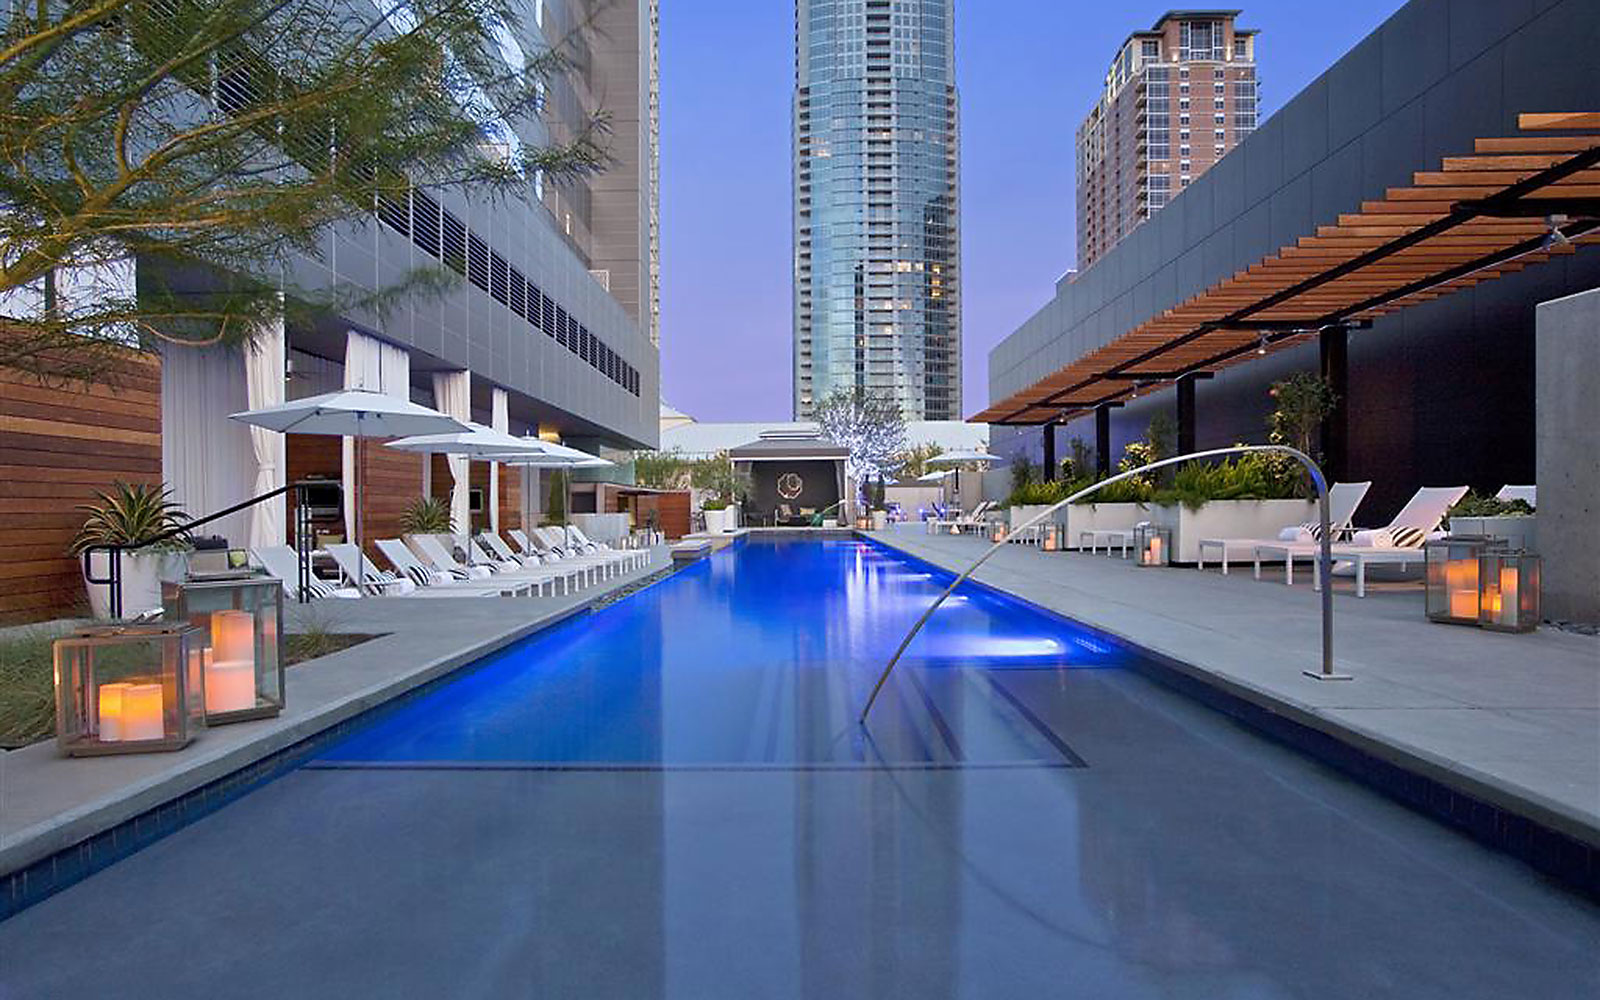 Take a Dip in These Amazing Hotel Pools: No Check-In Required: W Hotel Austin